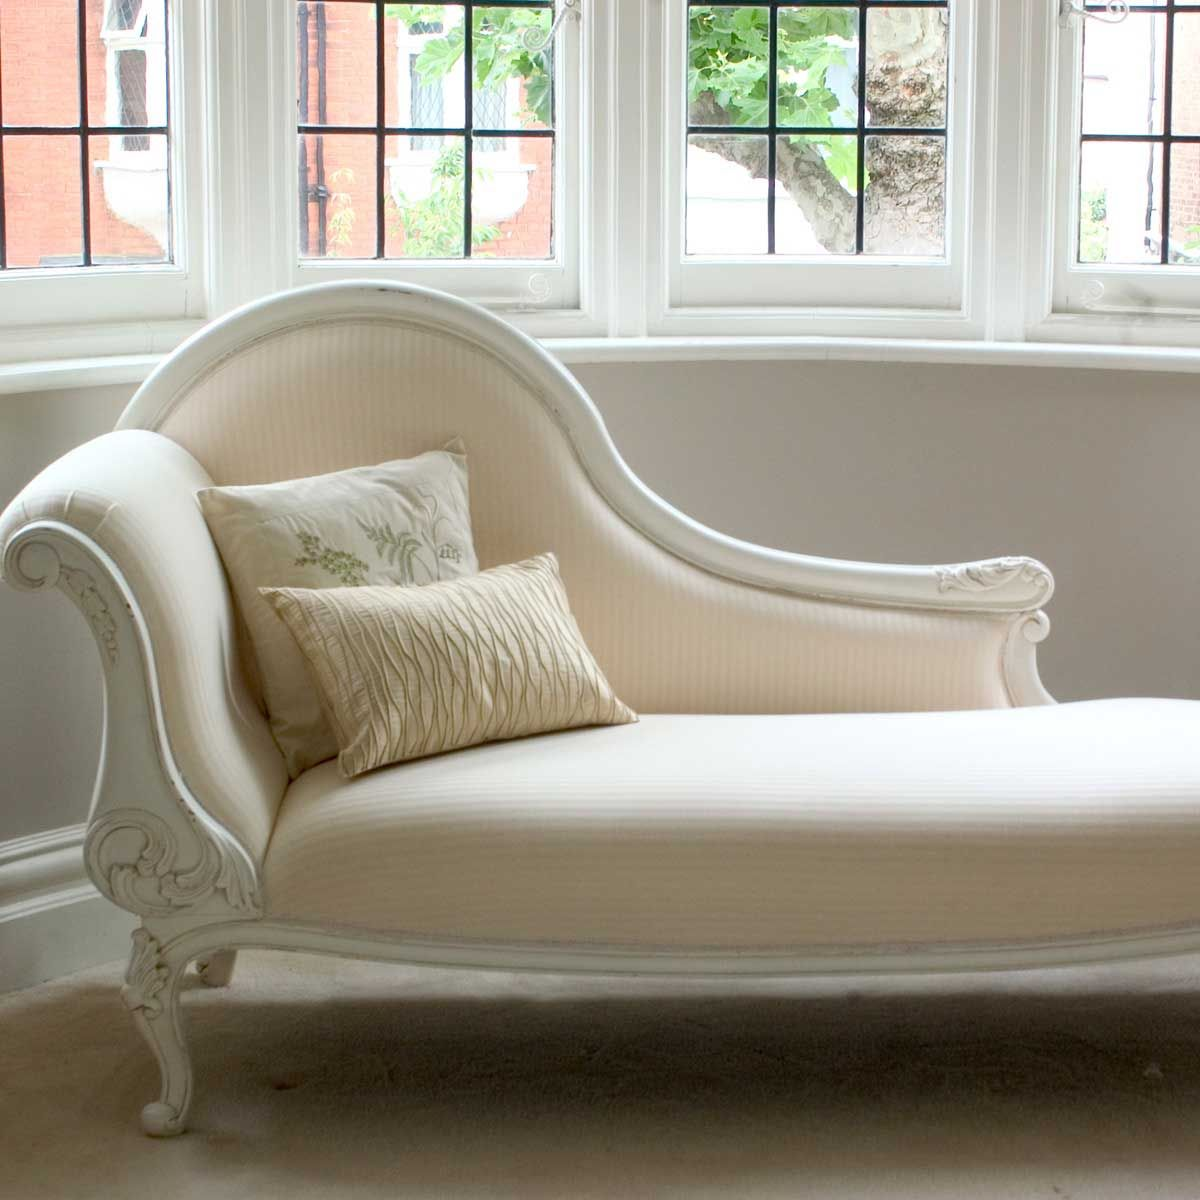 Bedroom Chaise Lounge 2